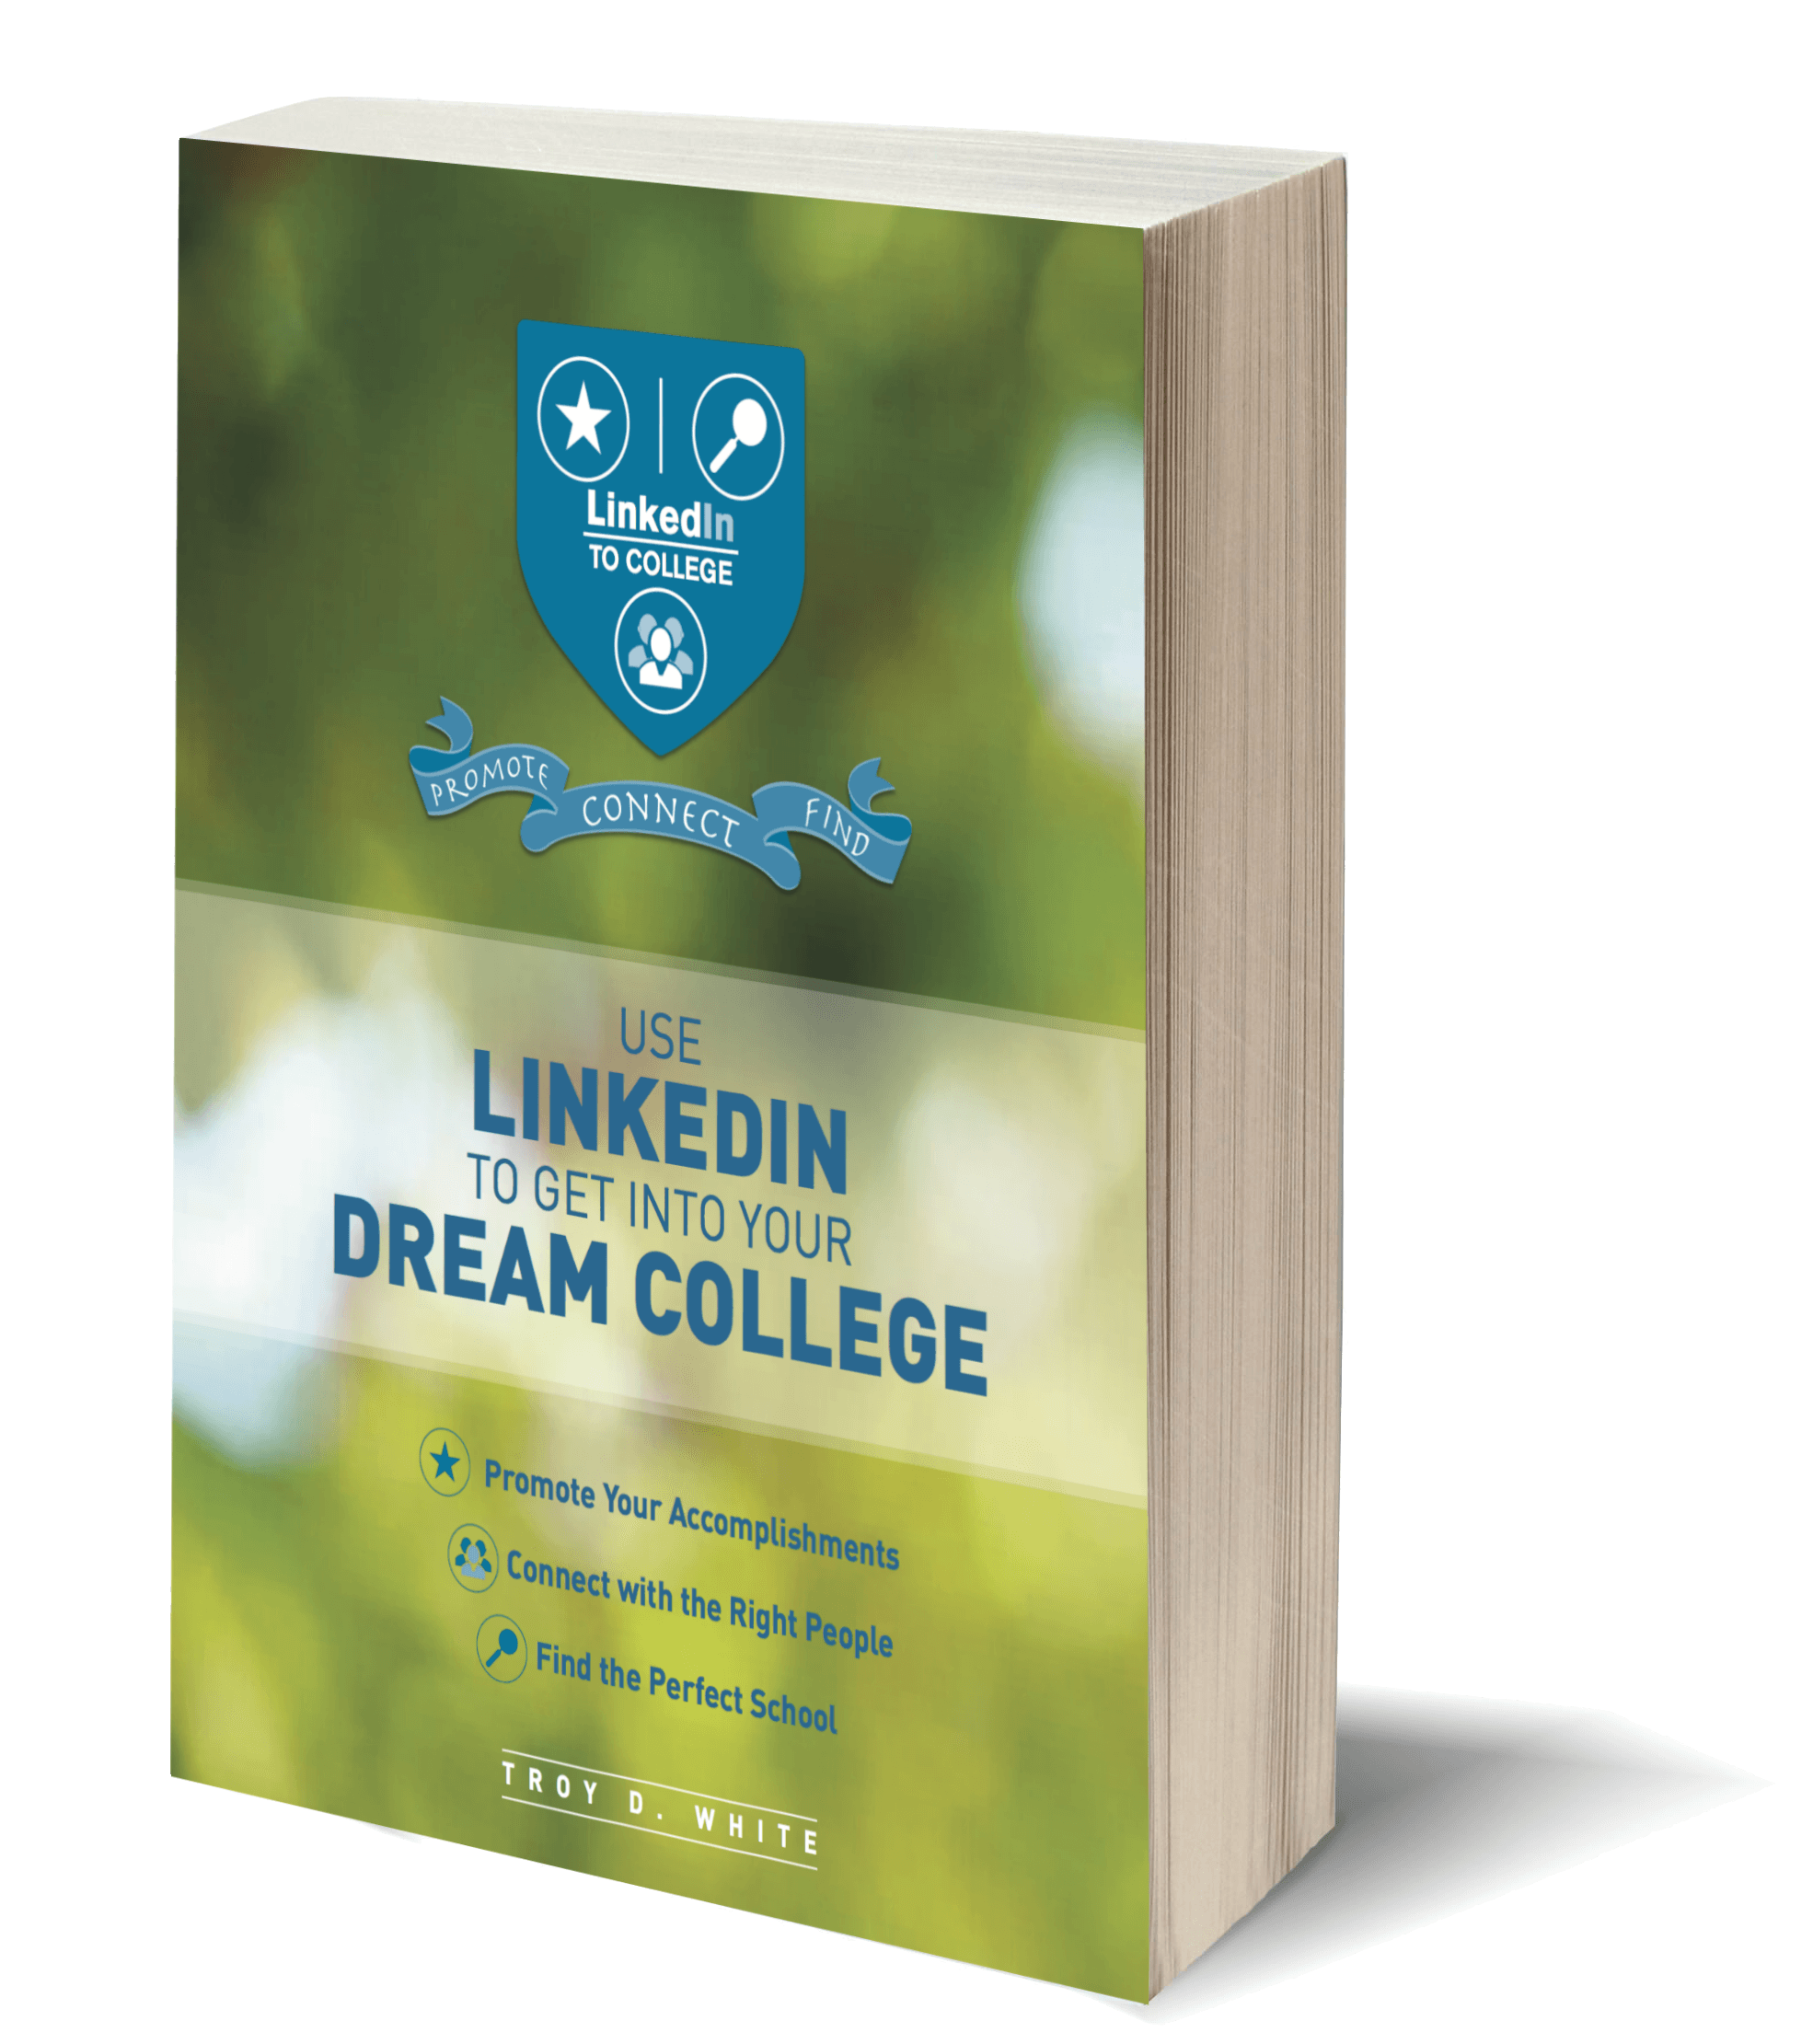 using linkedin in high school tips techniques linkedin to college use linkedin to get into your dream college e book find